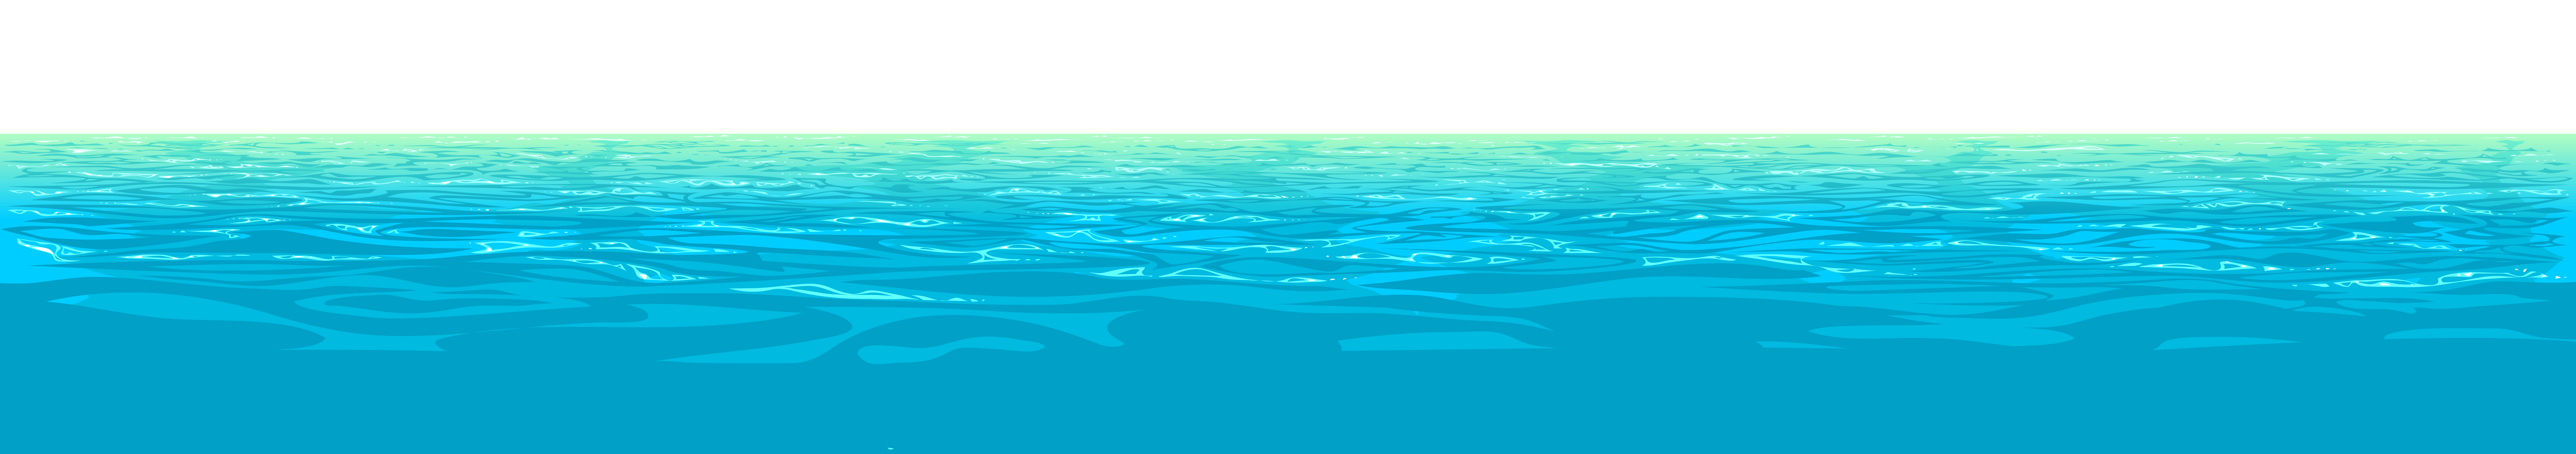 Ocean clipart open ocean. Sea png picture gallery